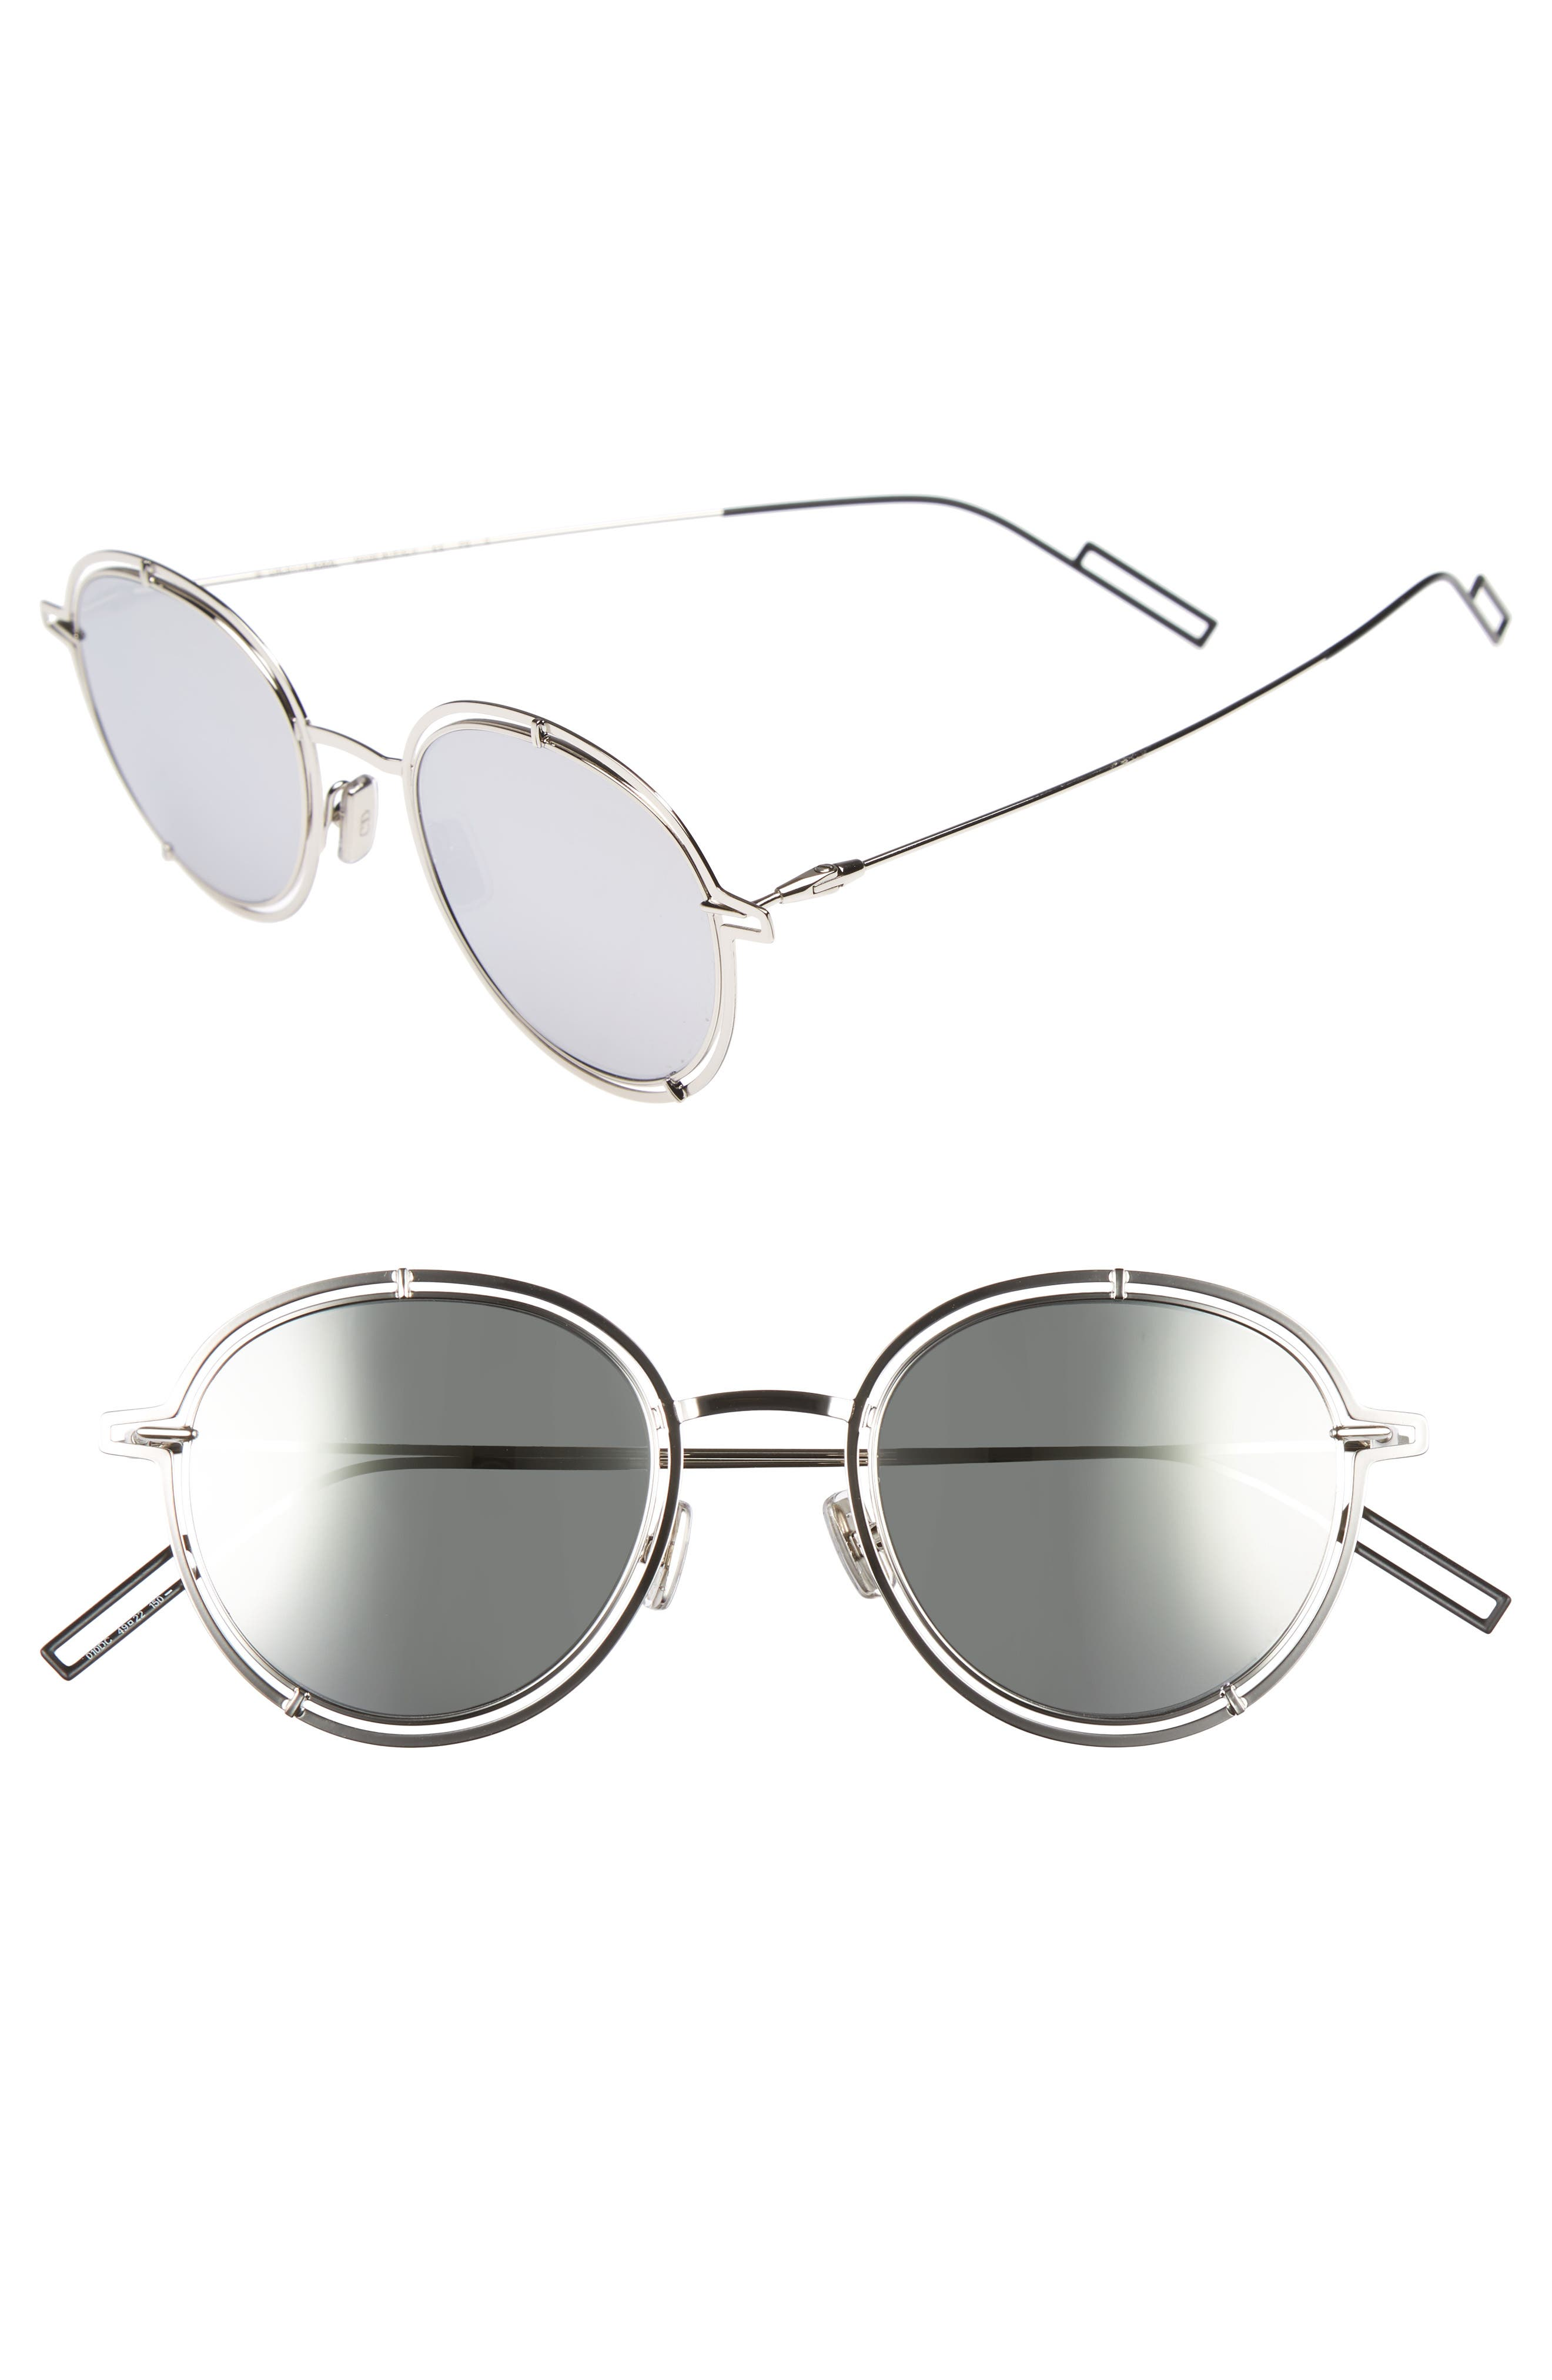 Alternate Image 1 Selected - Dior Homme 49mm Round Sunglasses